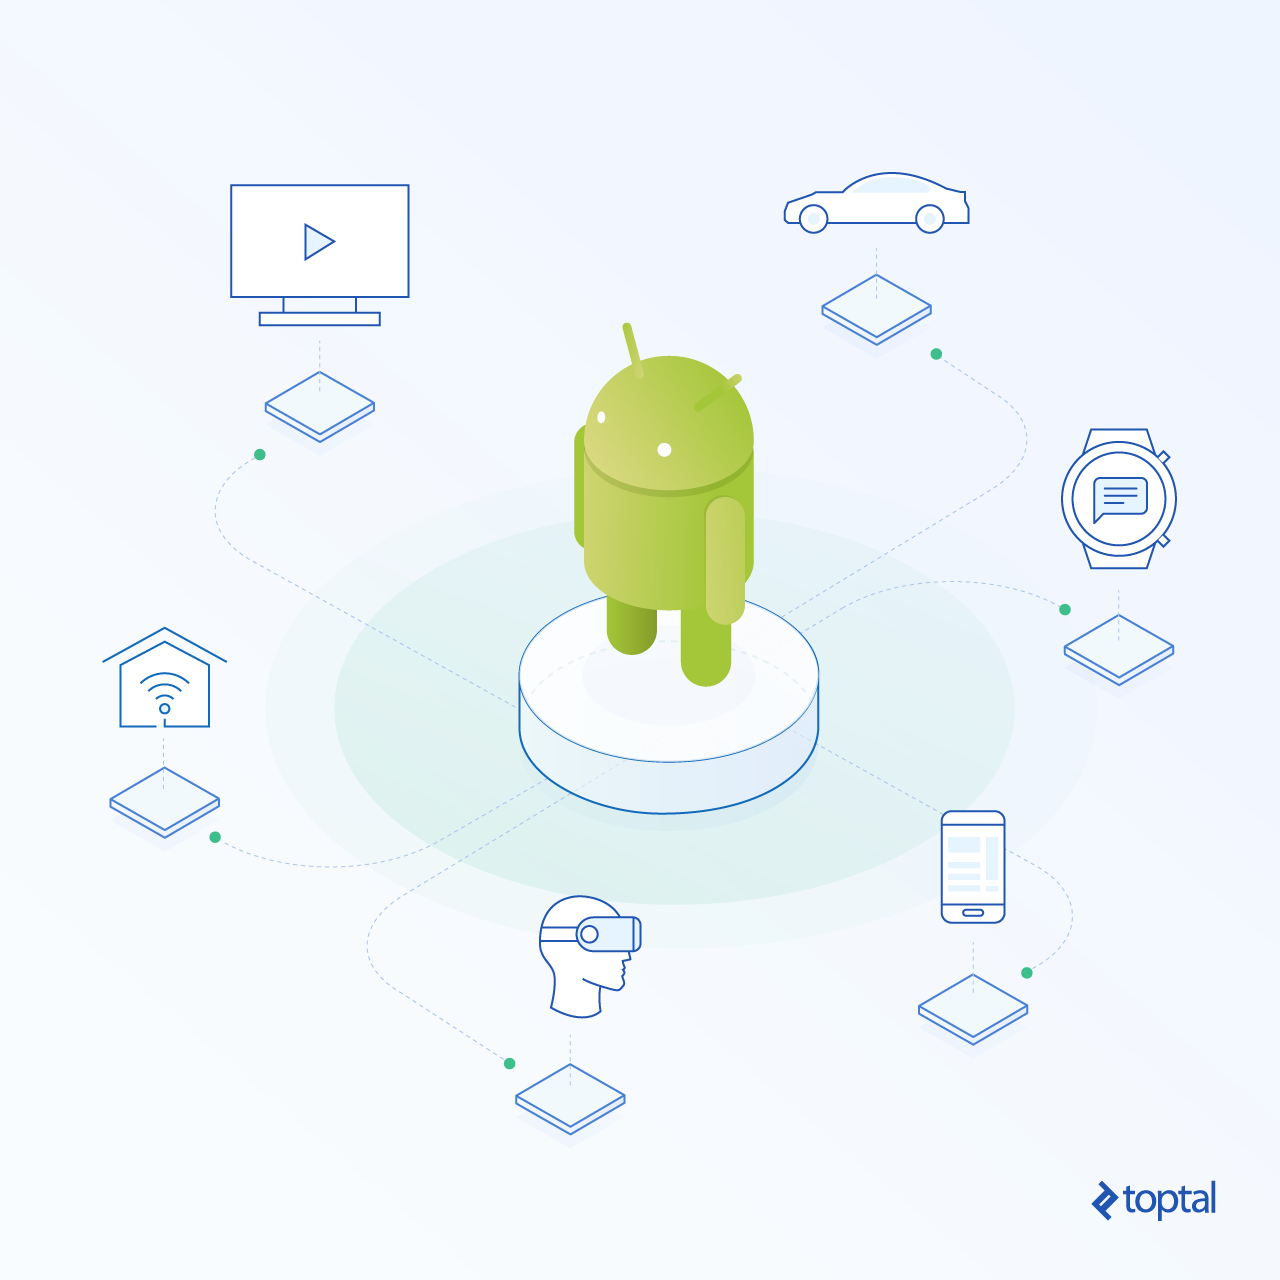 Android app development means potential code reuse across whole categories of devices.